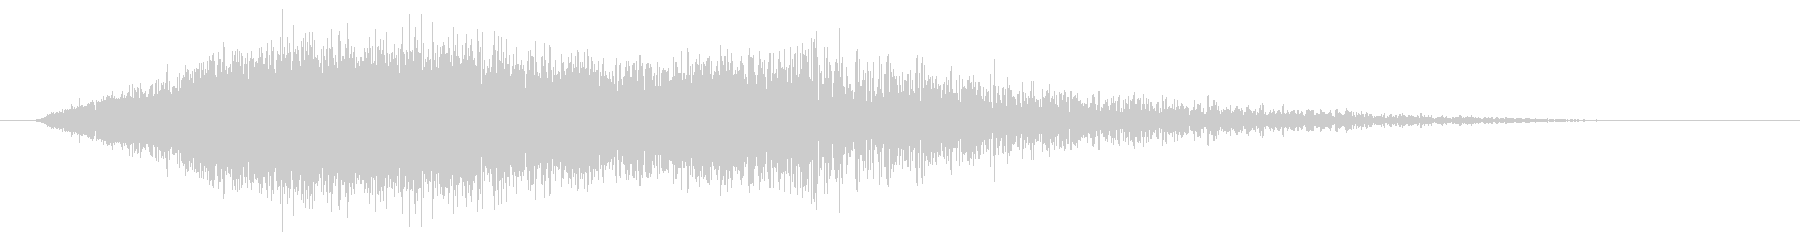 Magic and energy emit type A # 8's unreproduced waveform